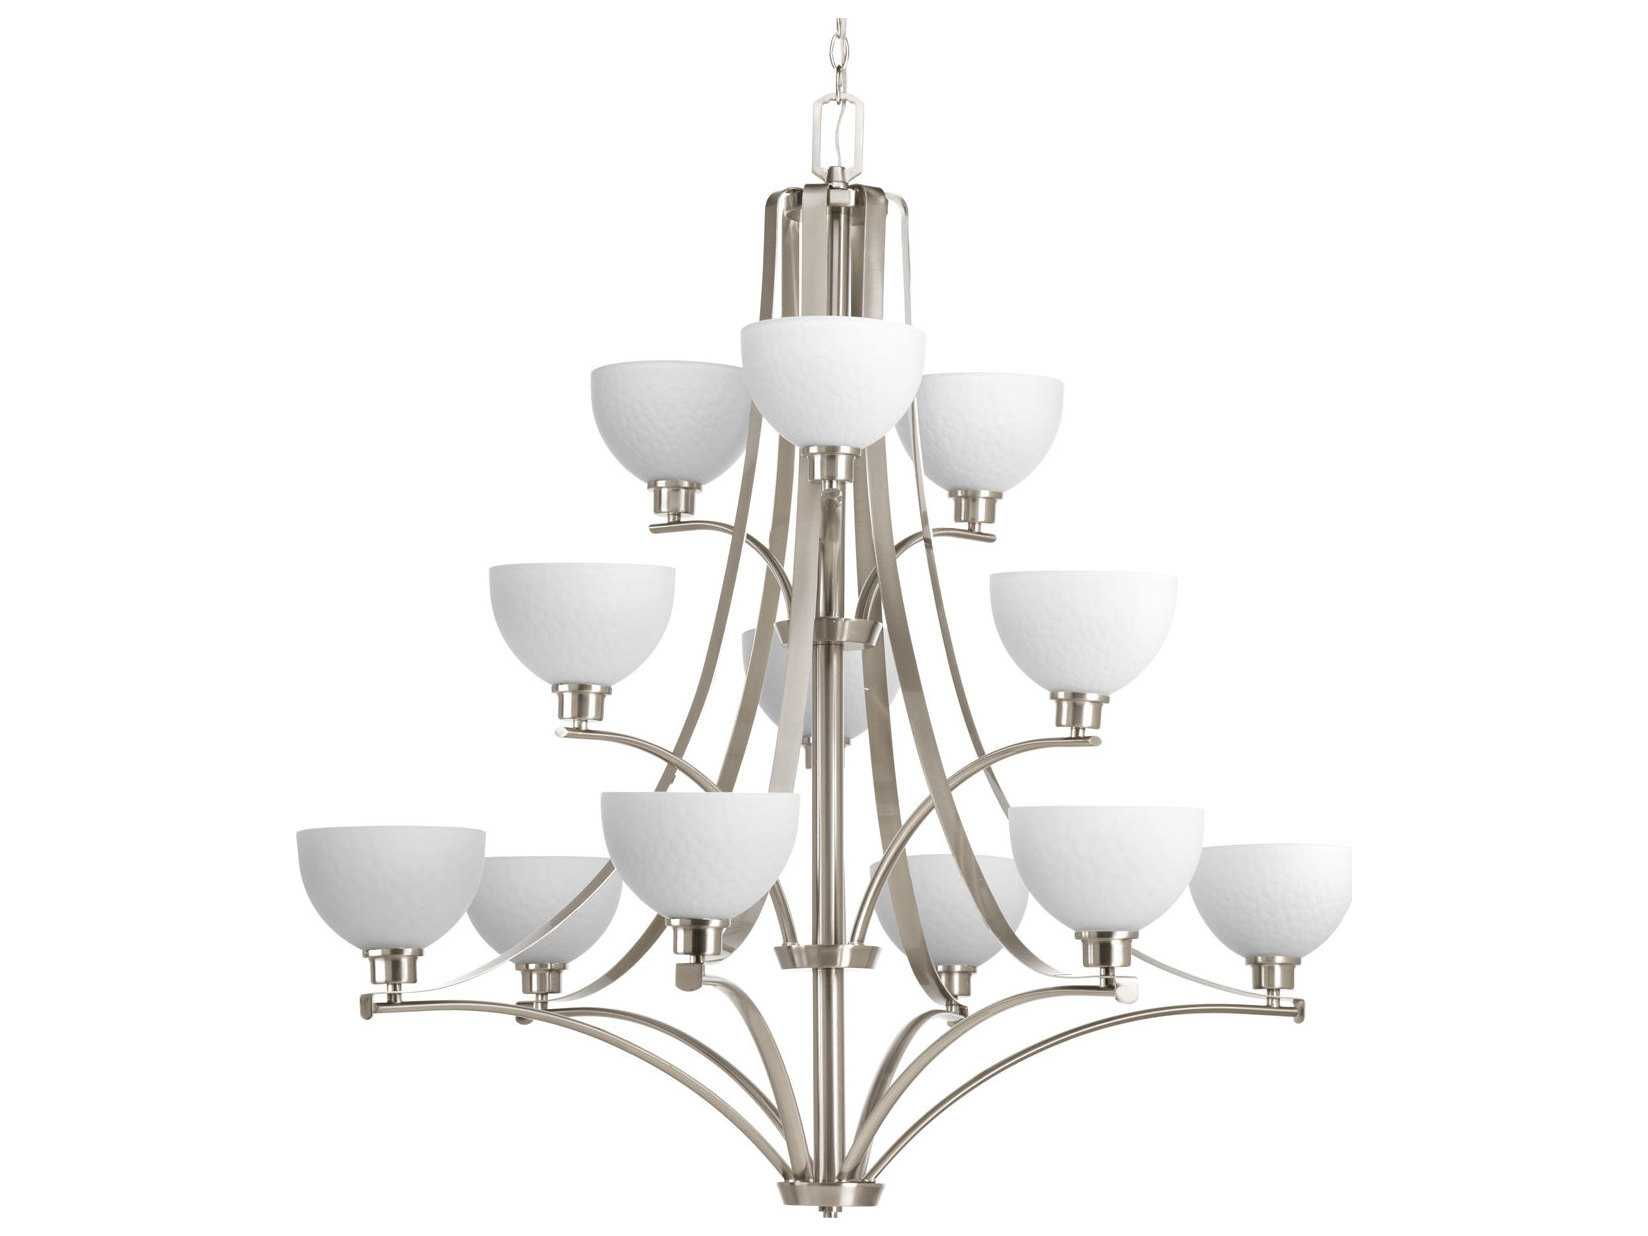 Progress Lighting Rizu Collection 3 Light Brushed Nickel: Progress Lighting Legend Brushed Nickel 12-Light 44'' Wide